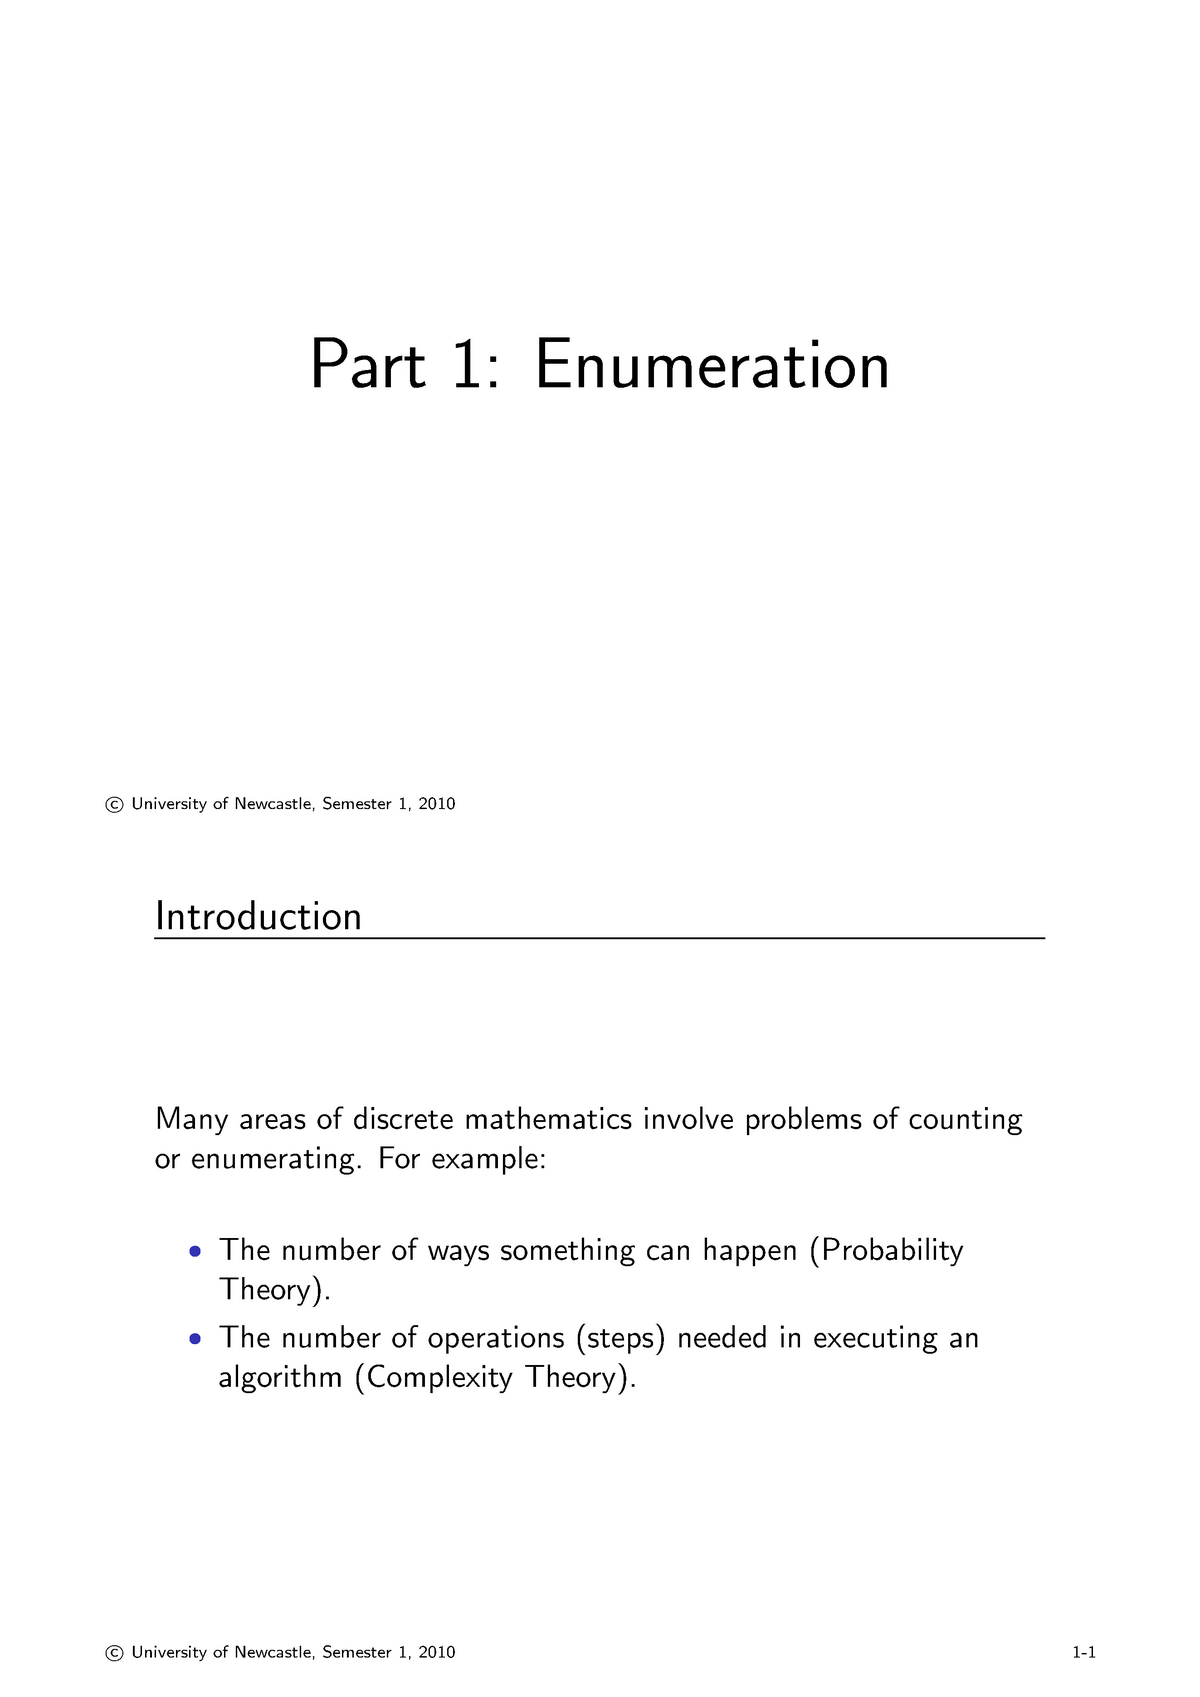 Lecture notes, lectures 5-8 - enumeration notes - MATH1510: Discrete